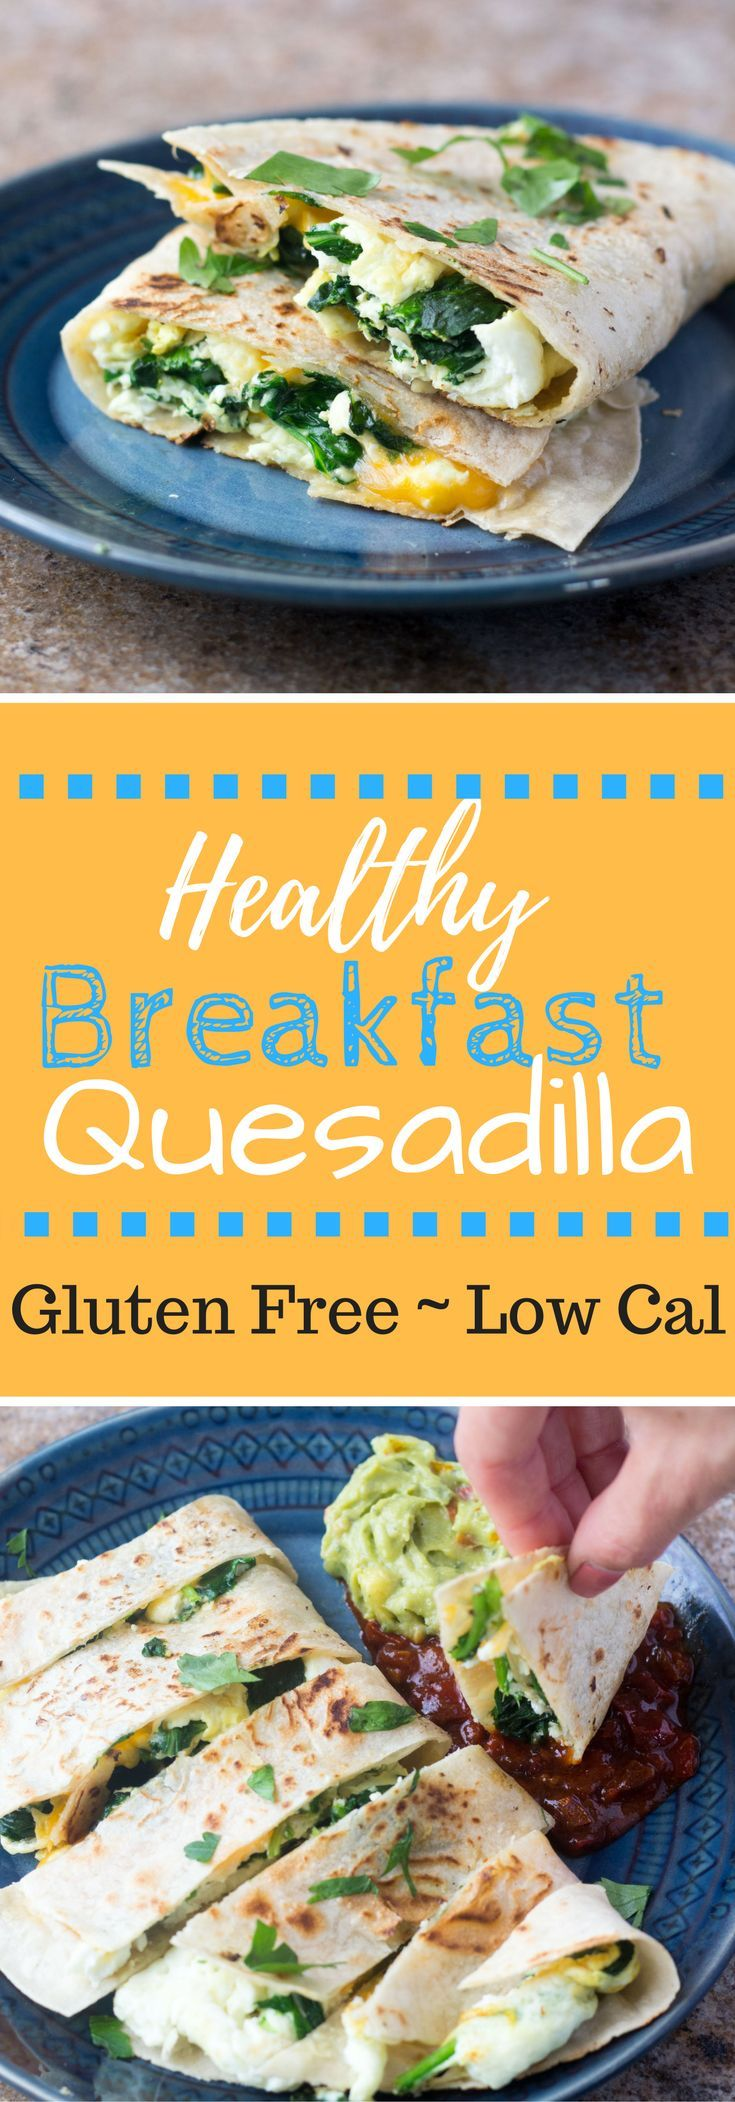 This Healthy Breakfast Quesadilla is filled with spinach, cheddar, and egg whites for a tasty filling healthy gluten free breakfast!   via @hungryhobby